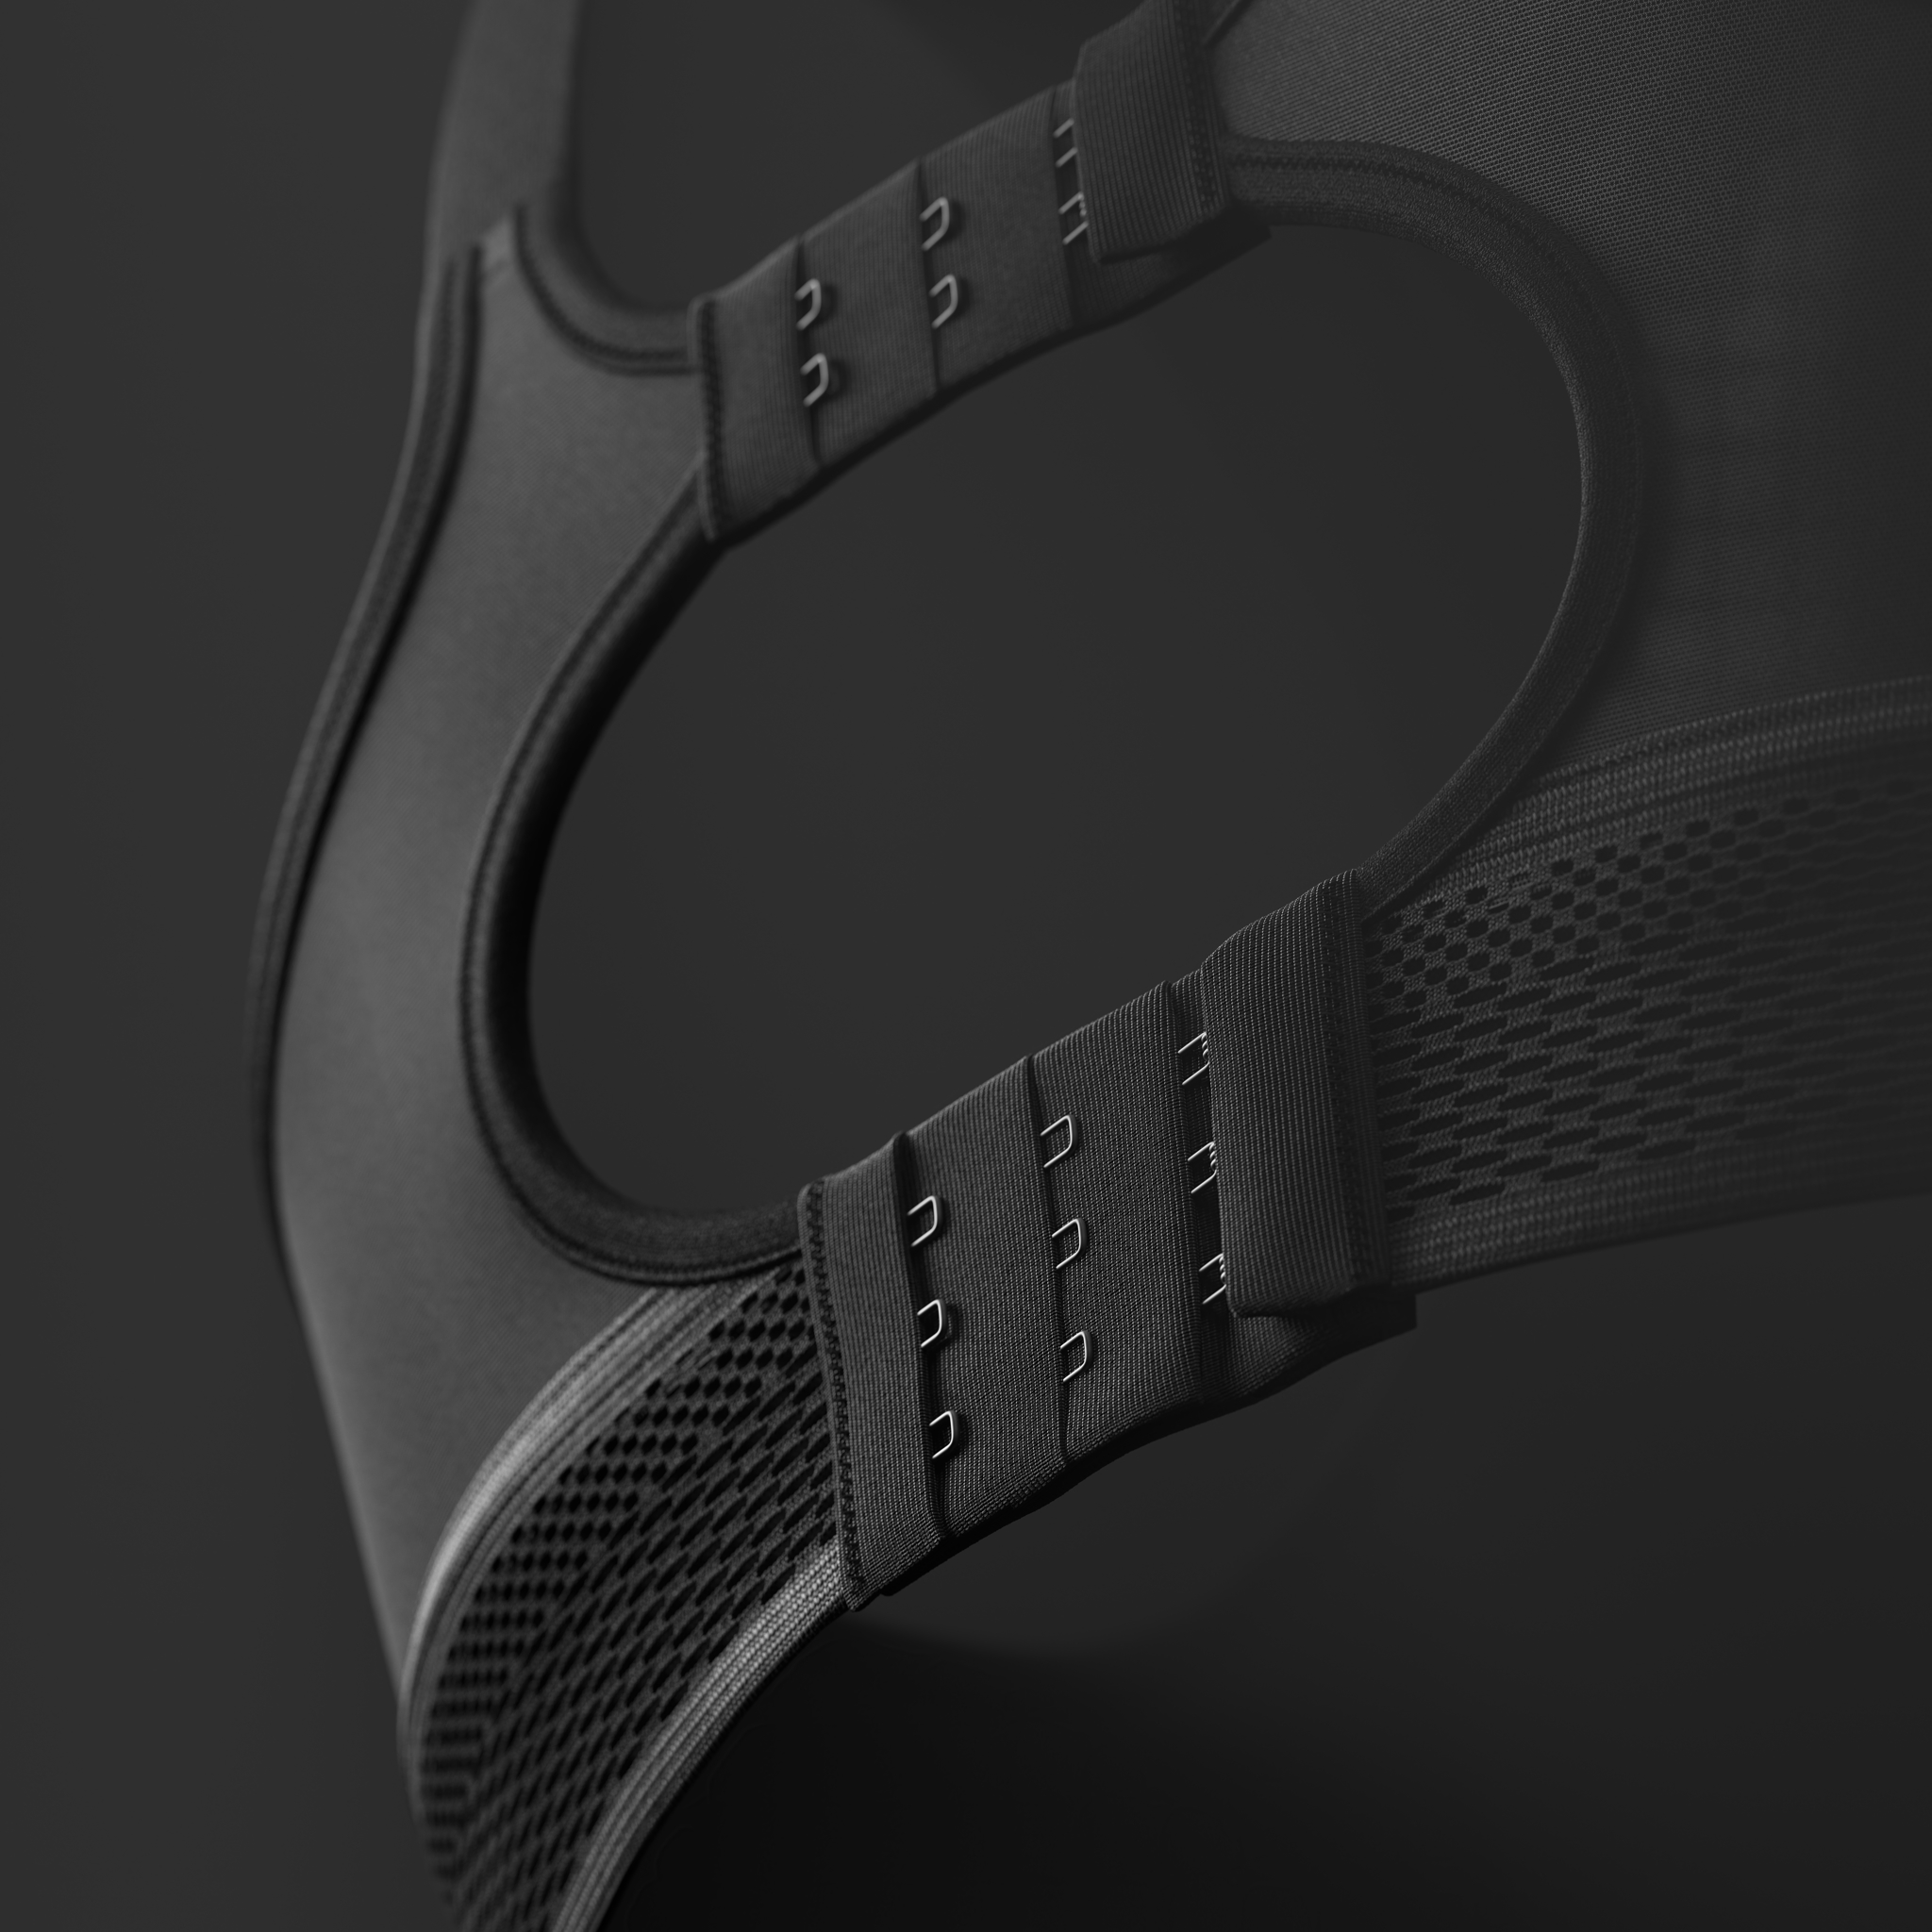 Nike_Ultrabreathe_Bra_Alpha_Black_Closeup_02_2K